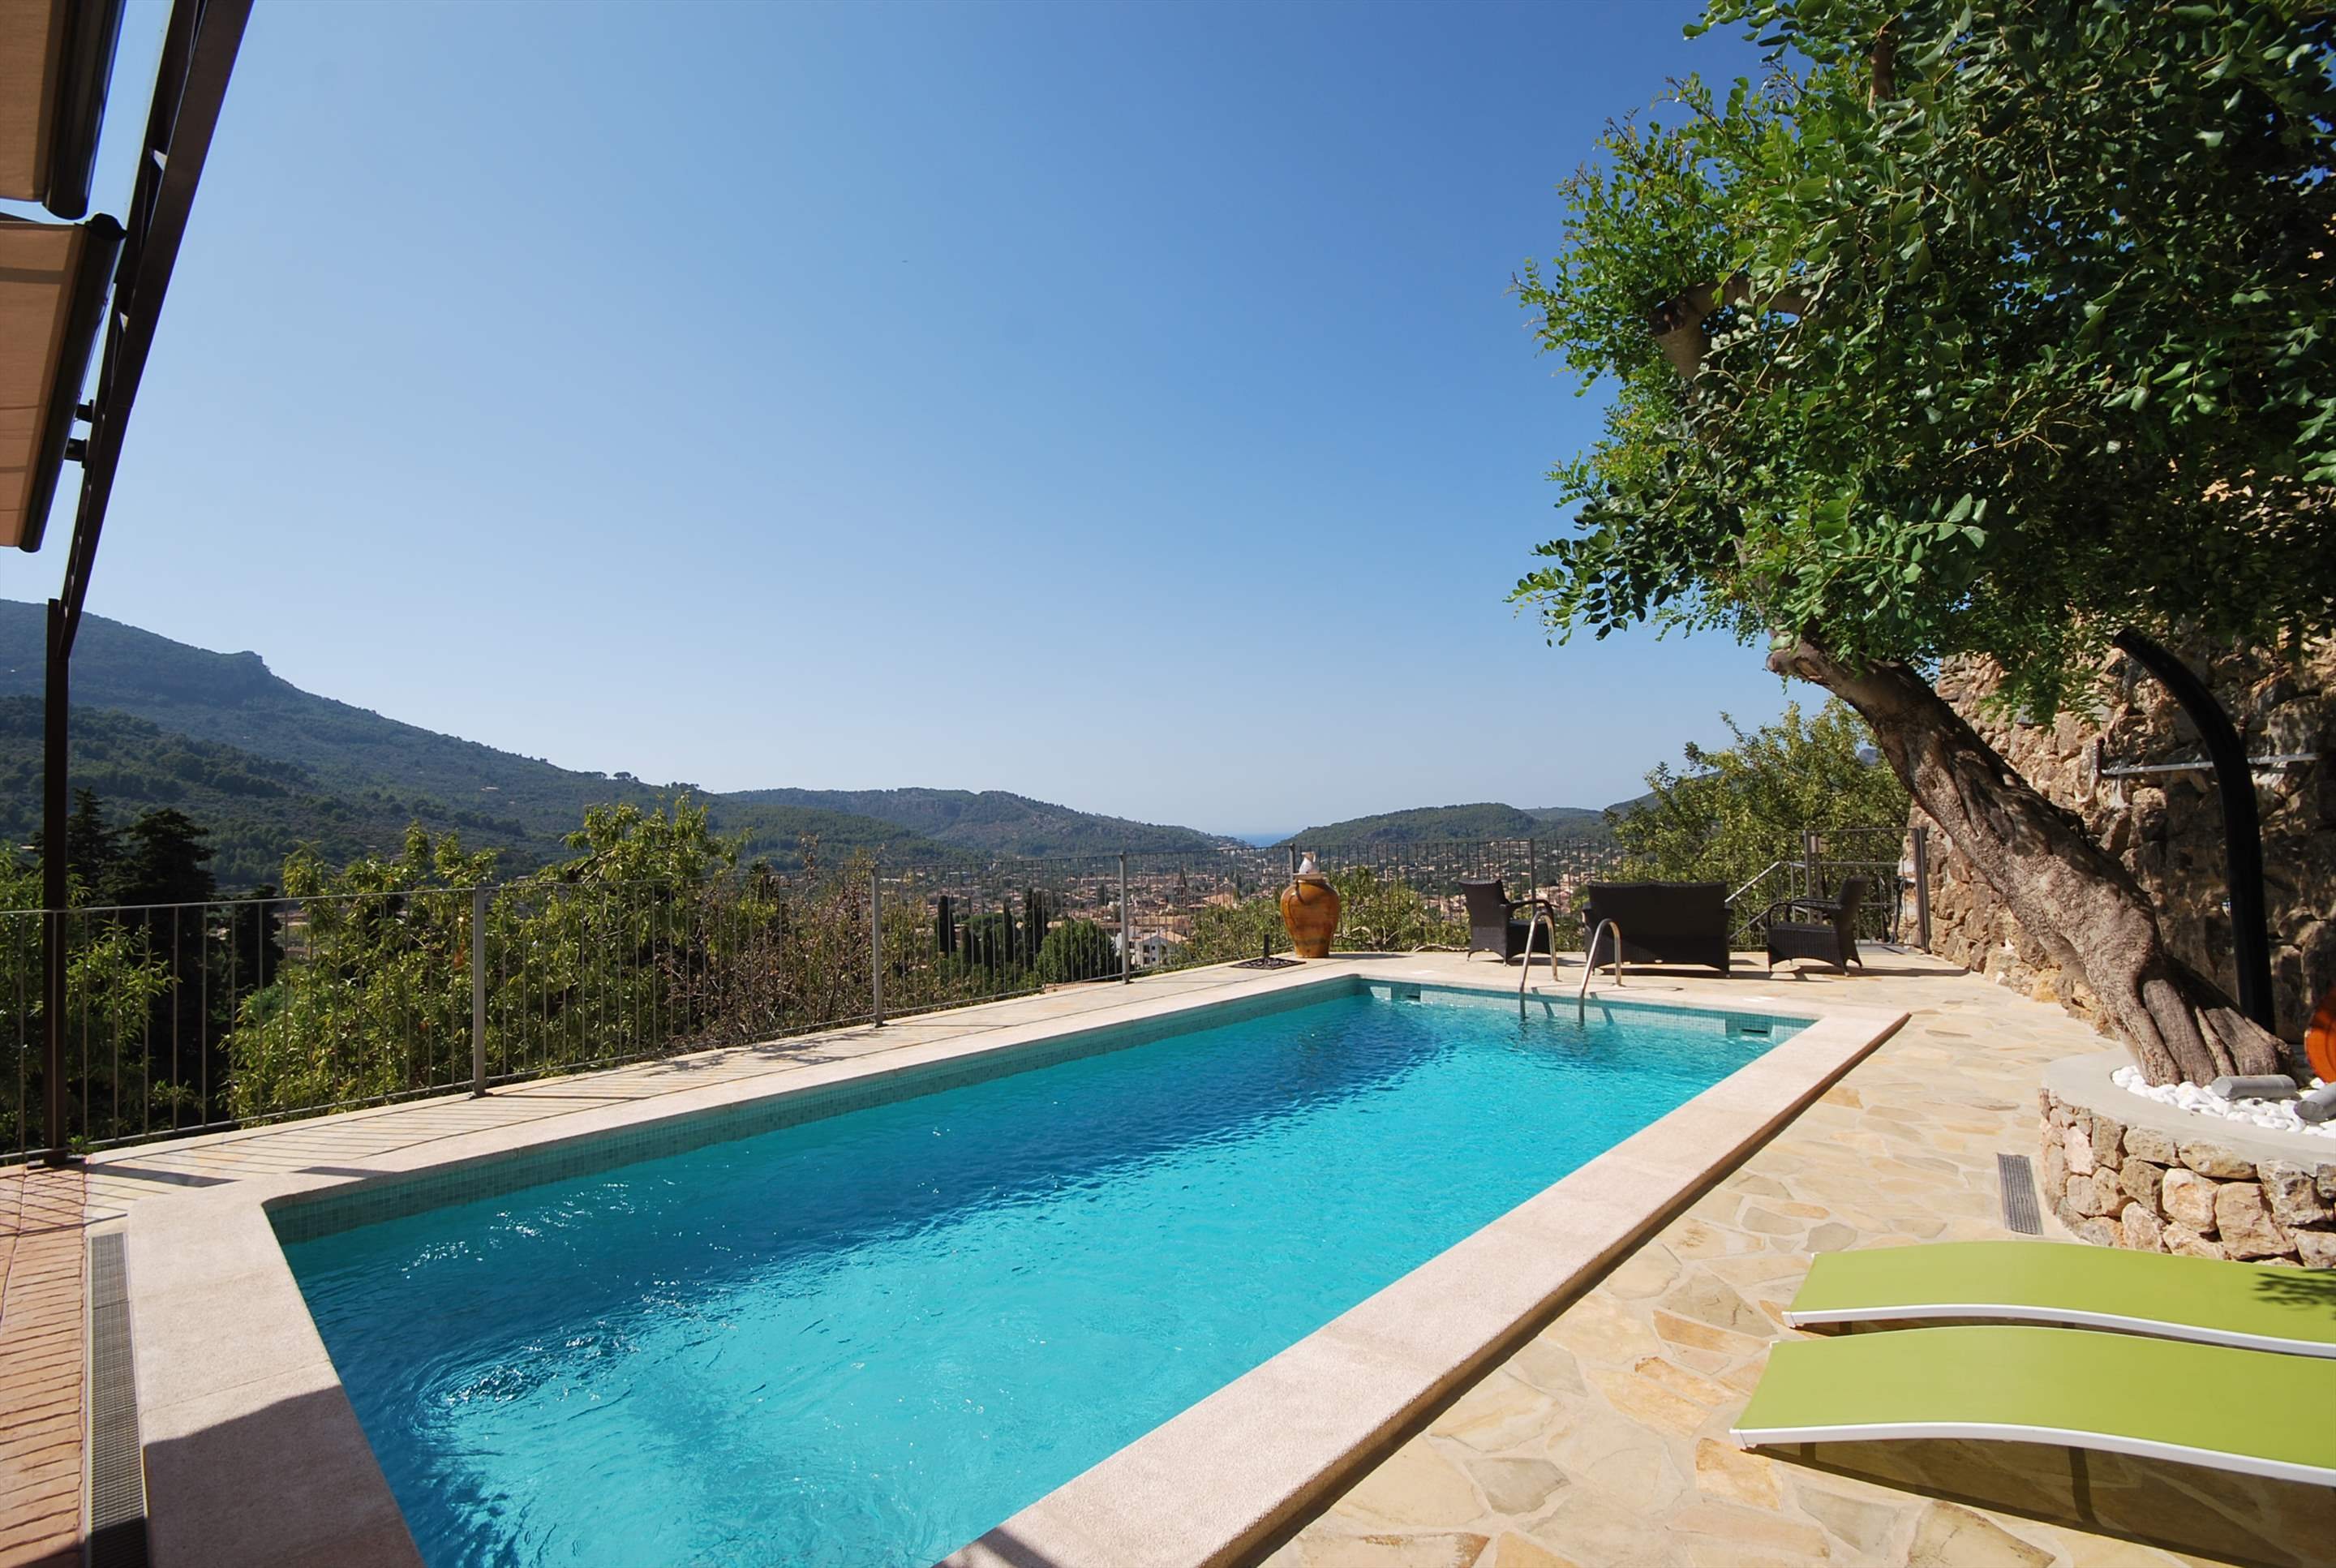 Casa Tres Cruces - SO1797, 3 bedroom villa in Soller & Deia, Majorca Photo #5